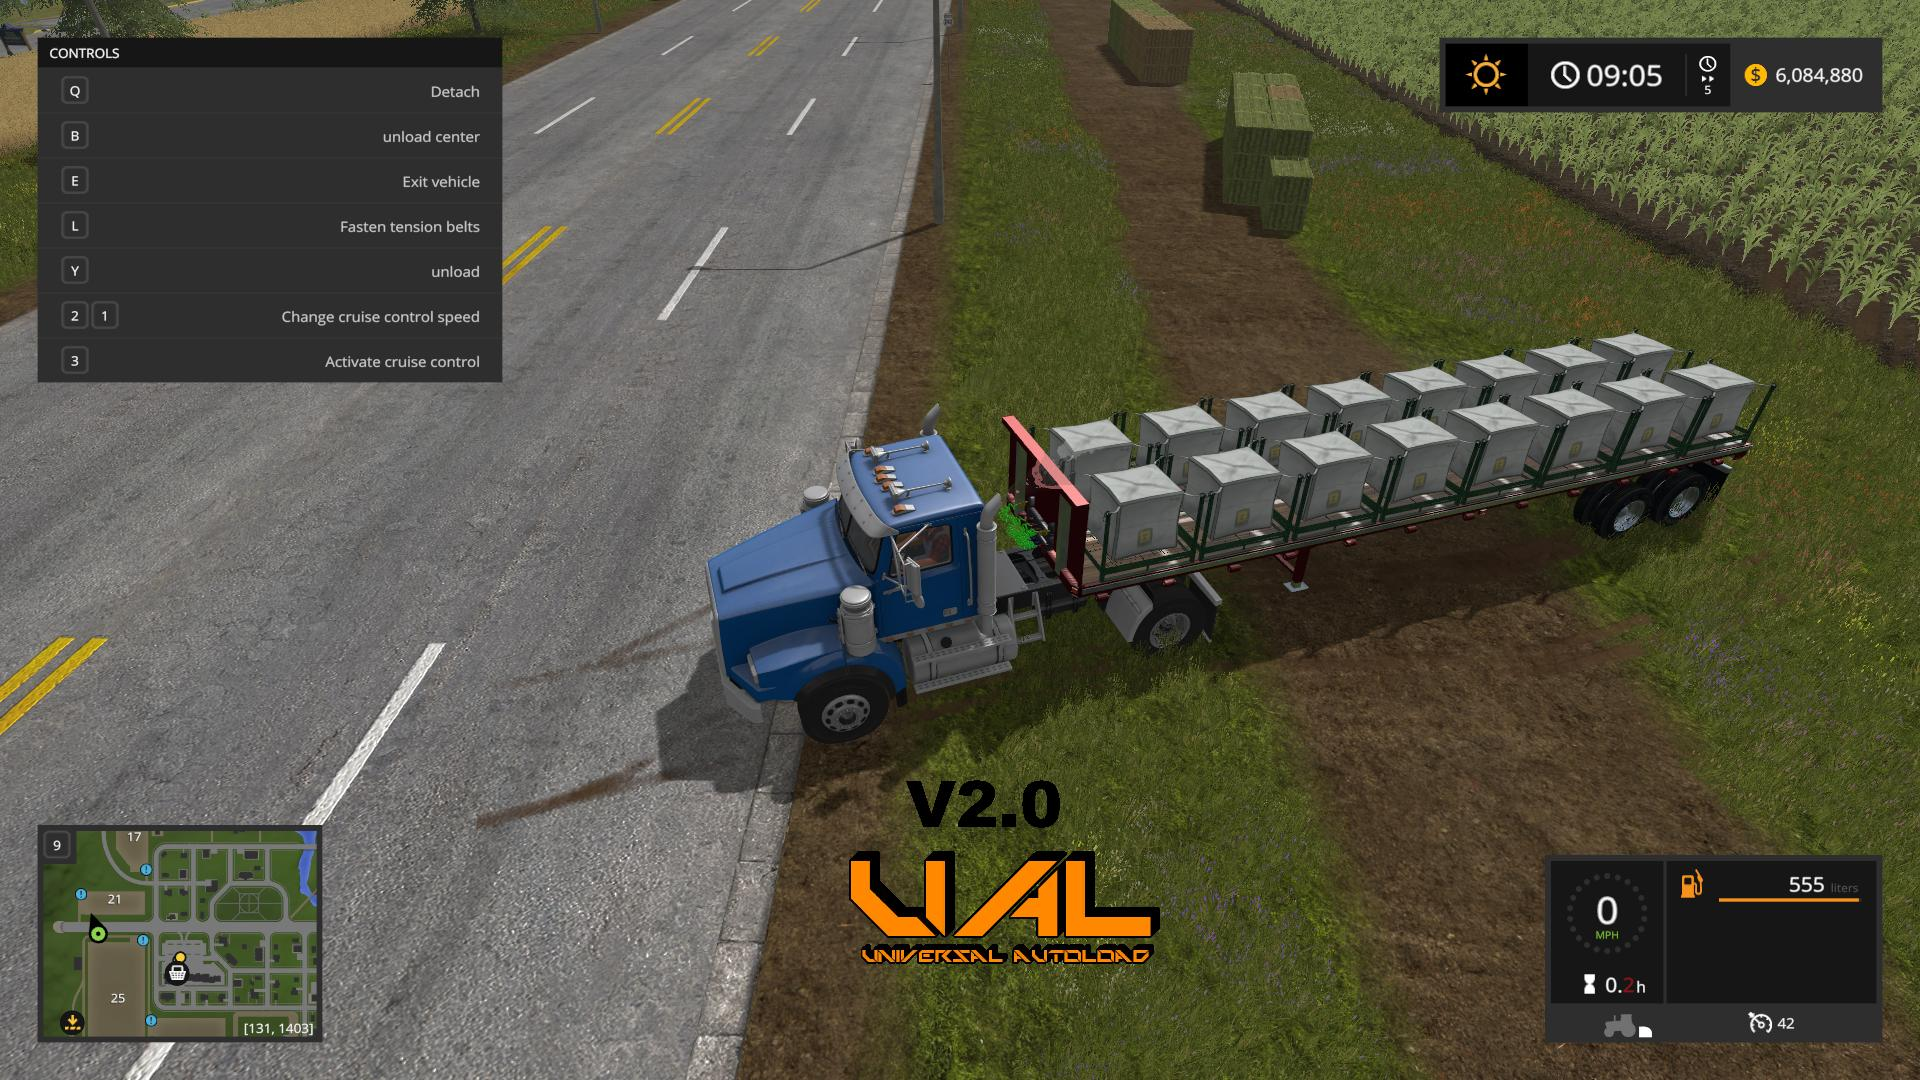 US Trailer With Autoload Feature v2 0 - Modhub us